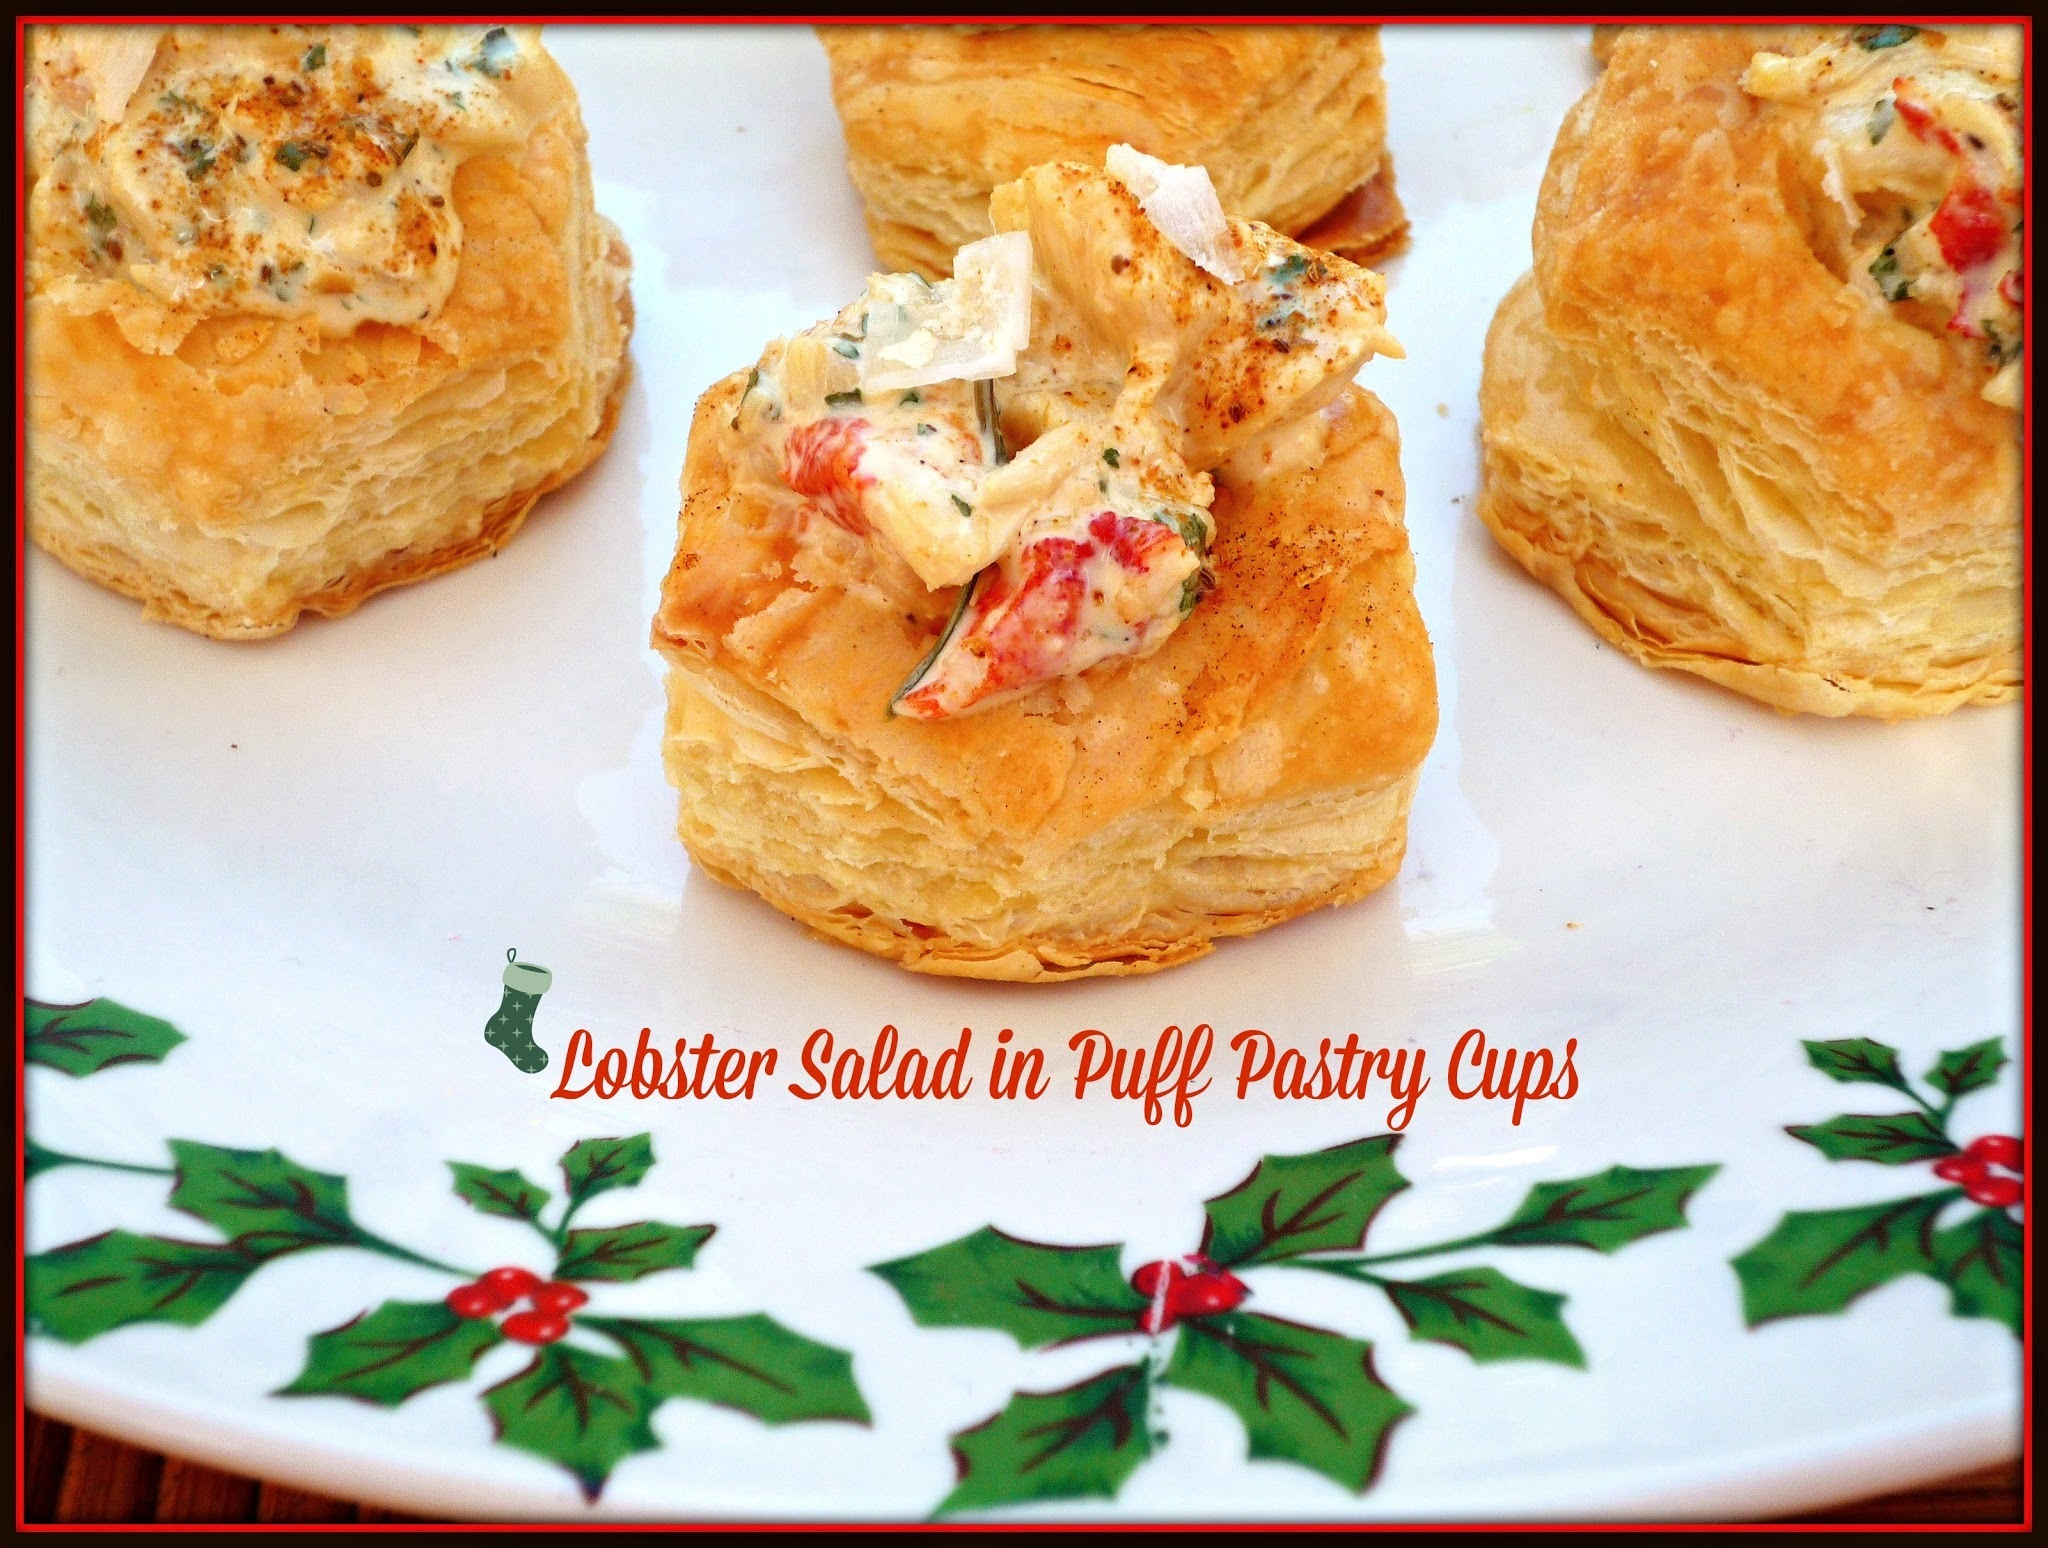 Last Minute Holiday Recipes #SundaySupper...Featuring Lobster Salad in Puff Pastry Cups #NoStressEntertaining #EasyElegance